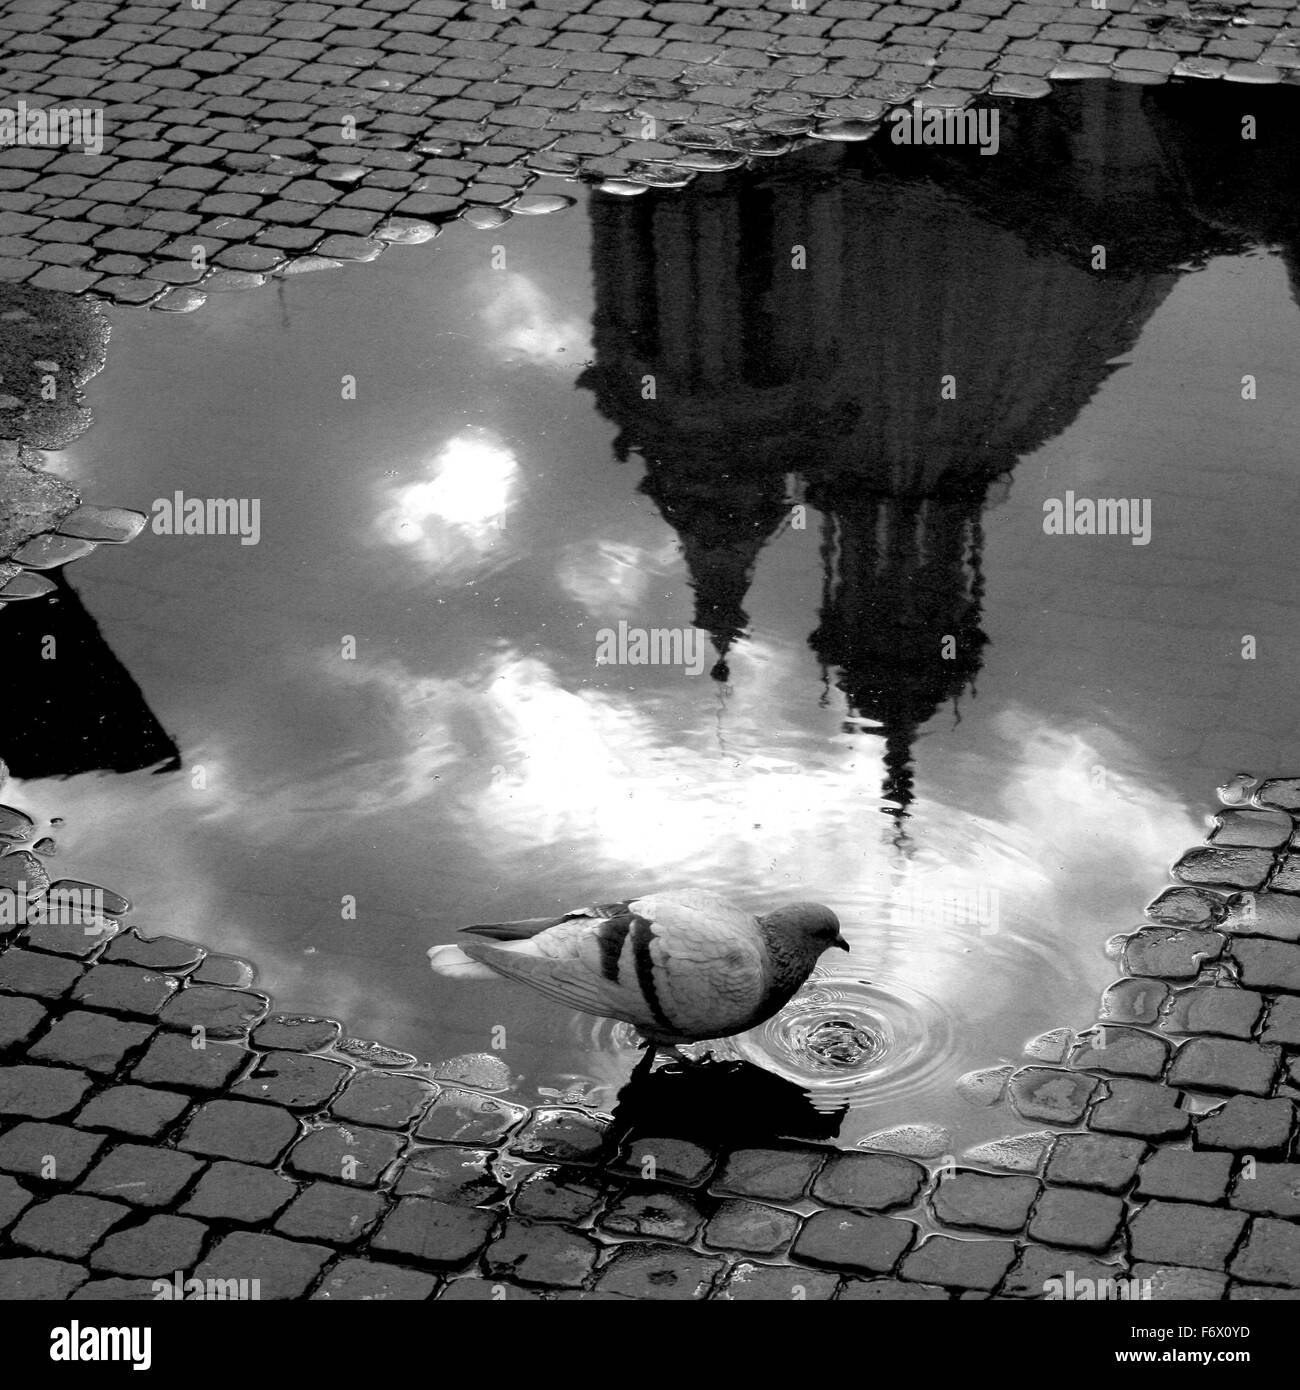 Piazza Navona Puddles - Stock Image